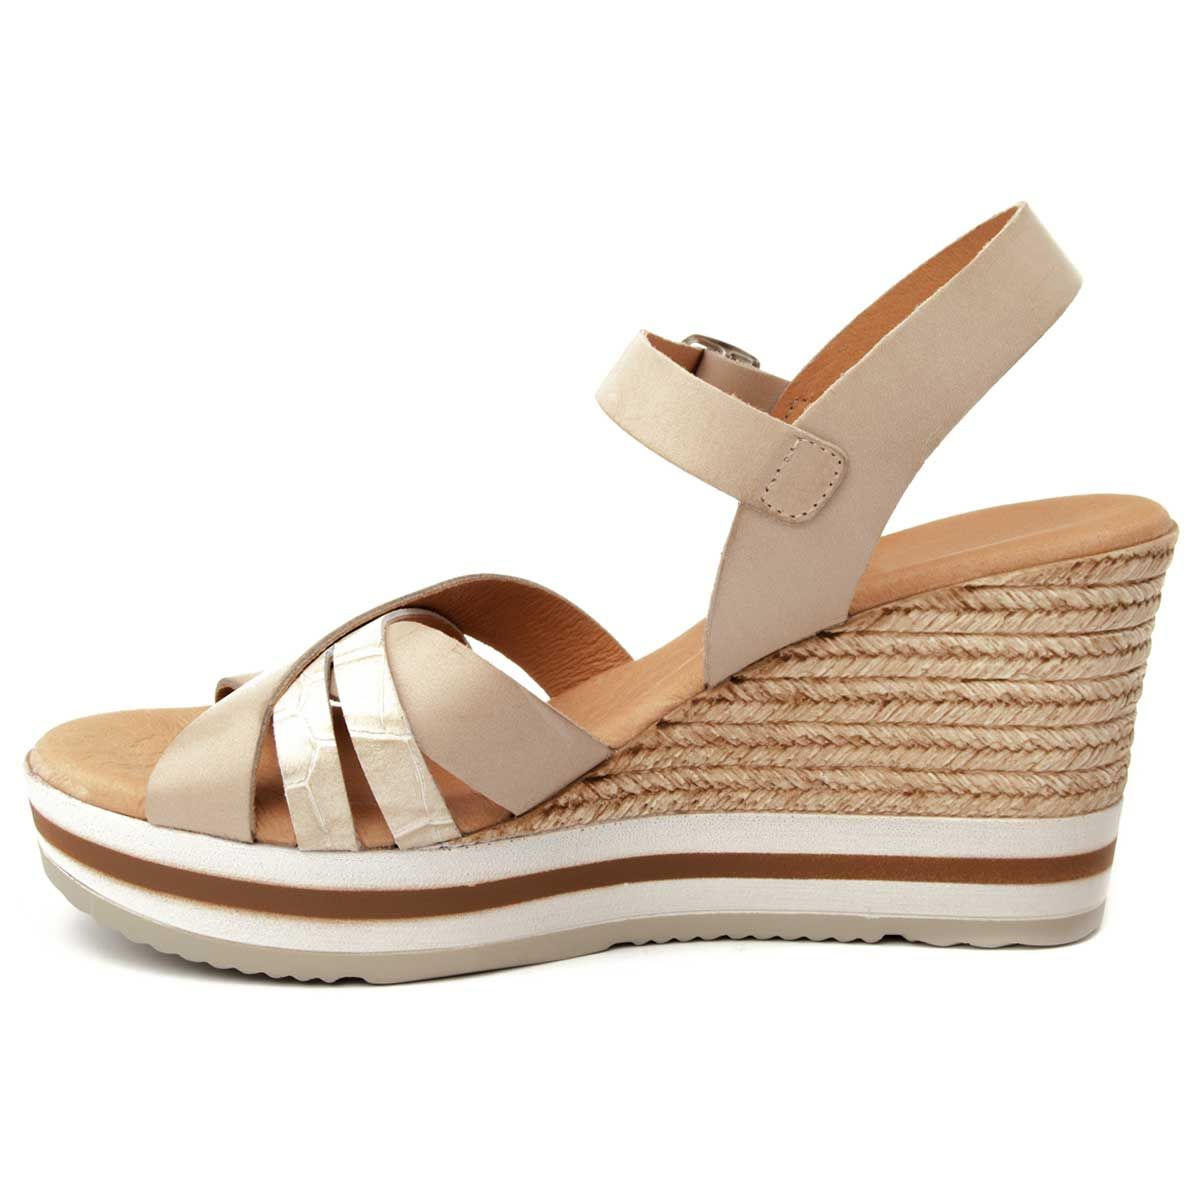 Purapiel Ankle Strap Wedge Espadrille in Taupe